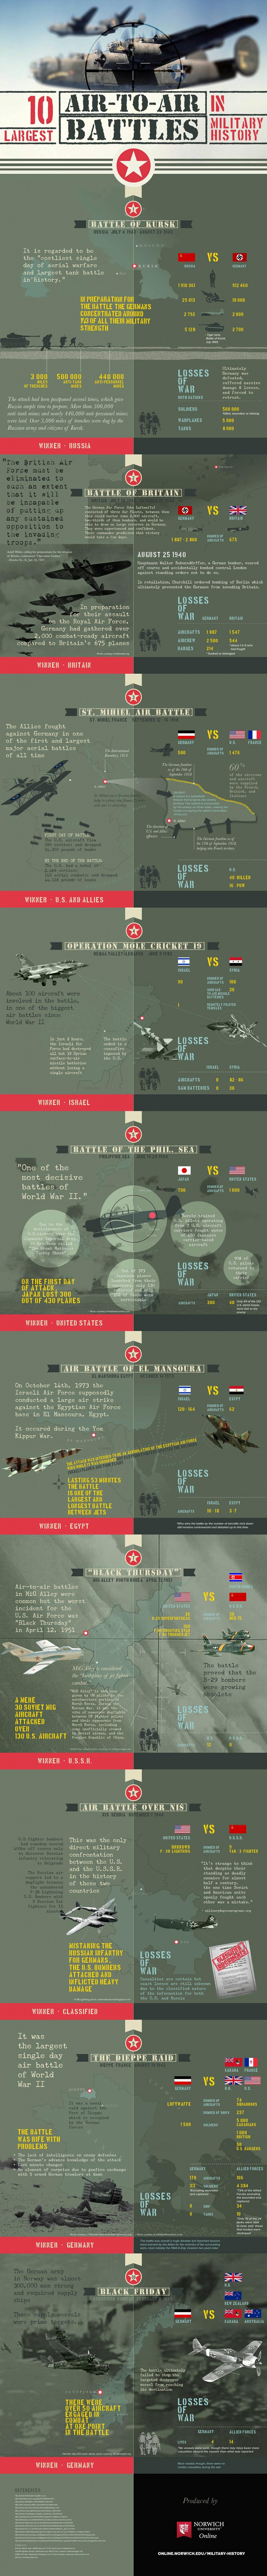 ten largest air battles infographic image